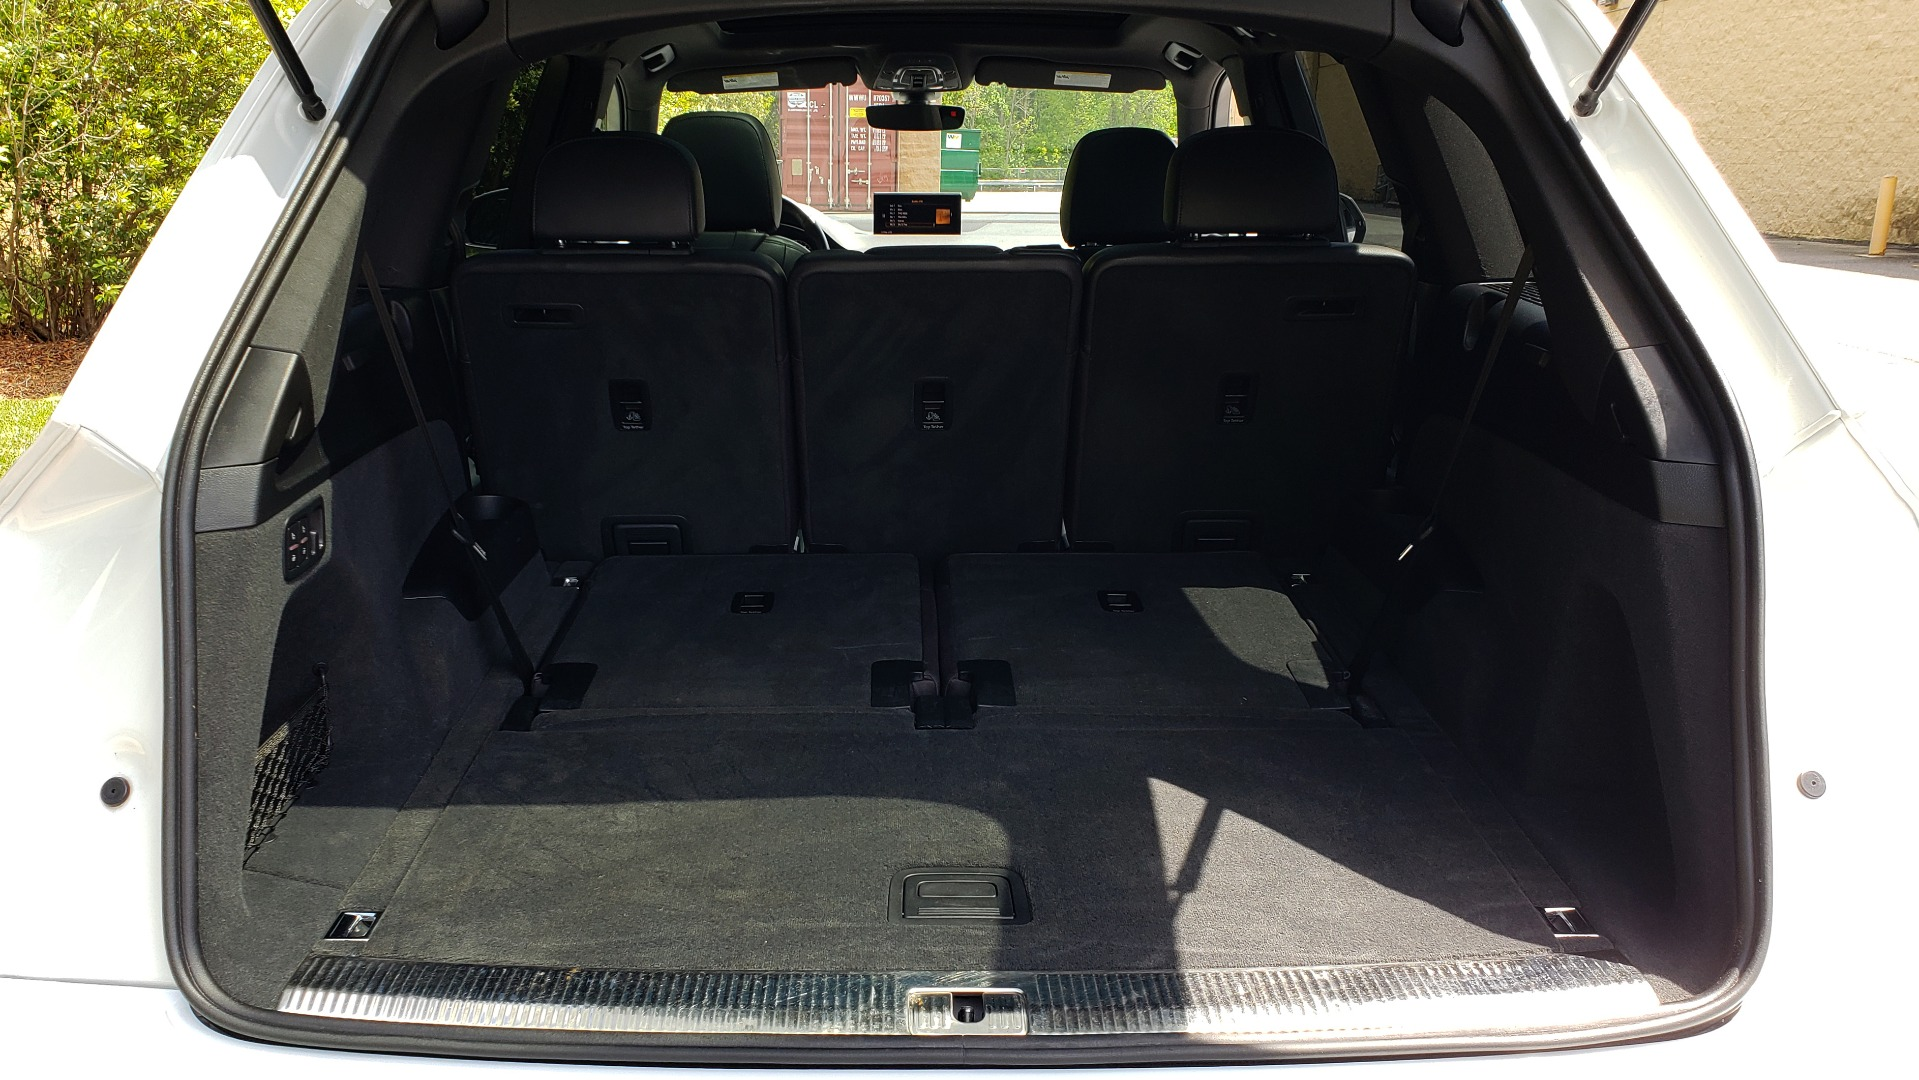 Used 2017 Audi Q7 PREMIUM PLUS / VISION PKG / NAV / PANO-ROOF / 3-ROW / REARVIEW for sale Sold at Formula Imports in Charlotte NC 28227 21